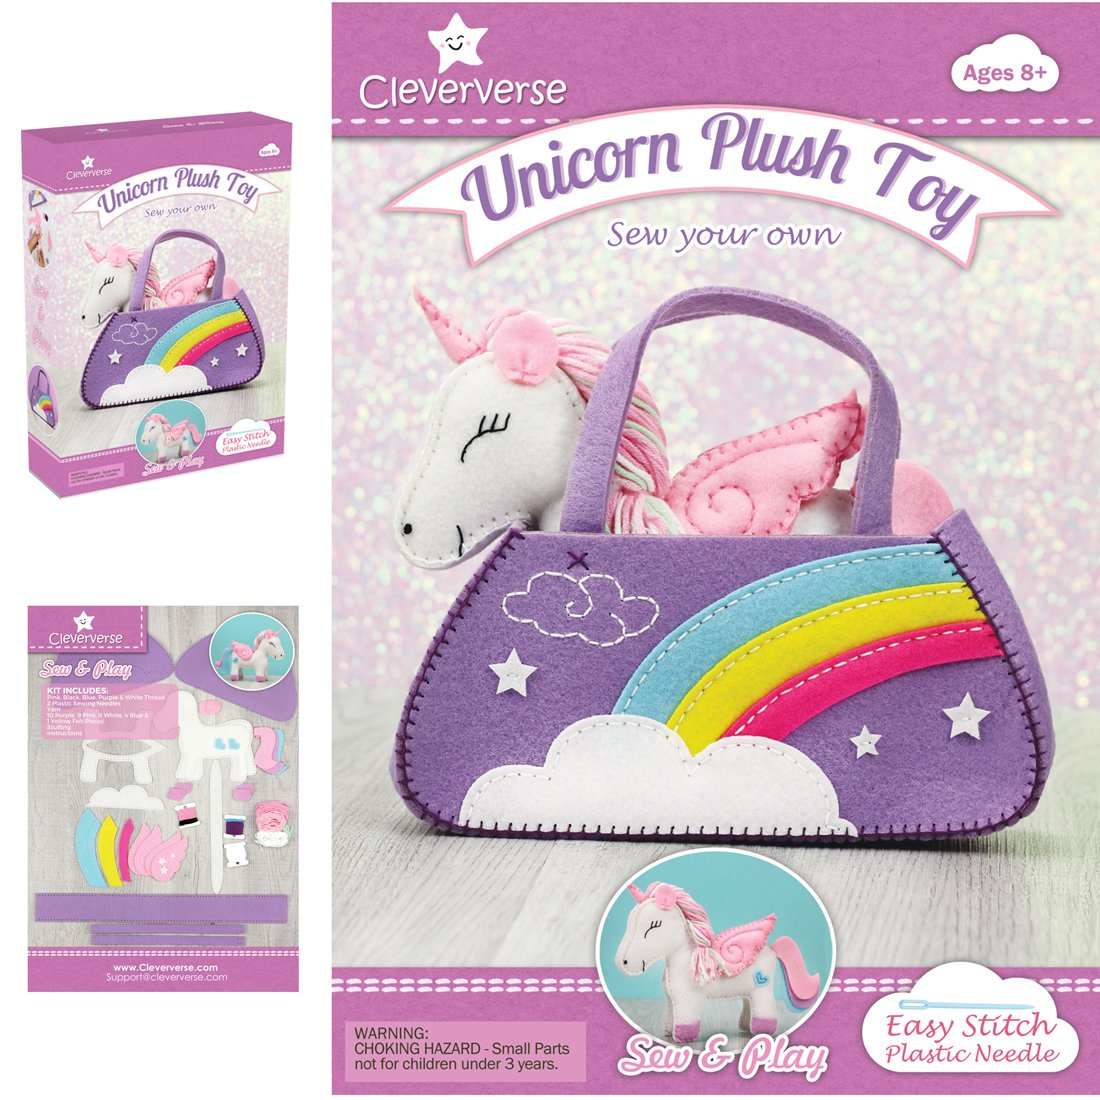 Cleververse Unicorn Plush Toy Sewing Kit for Girls - Craft Stuffed Plush Gift